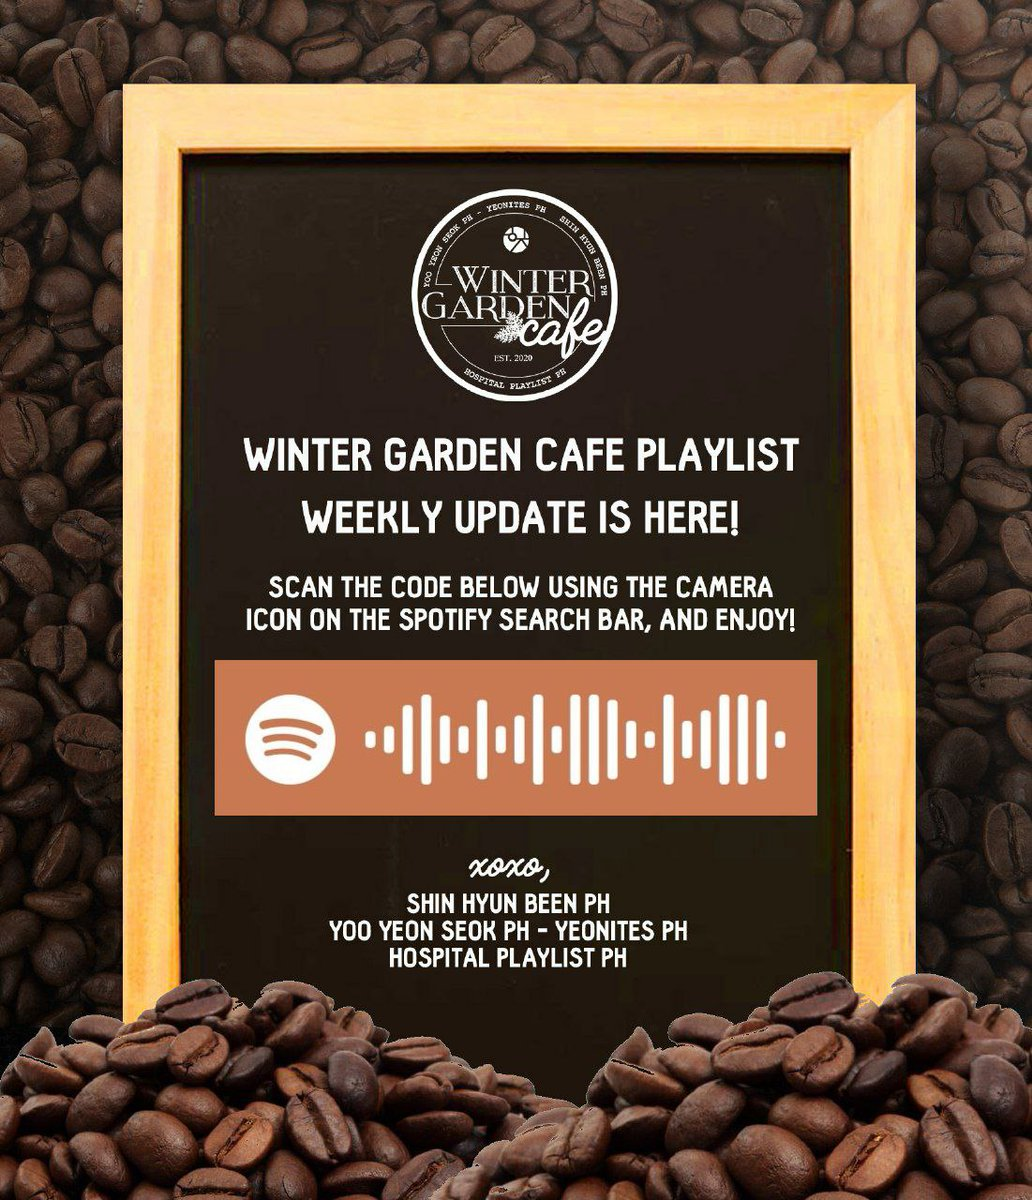 Feel the coffee shop vibes again and turn on the playlist WinterGarden Cafe has updated on Spotify for everyone to get them WinterGarden feels! Dont forget to send love and support for our coffee truck project! See full project details on the reply below: